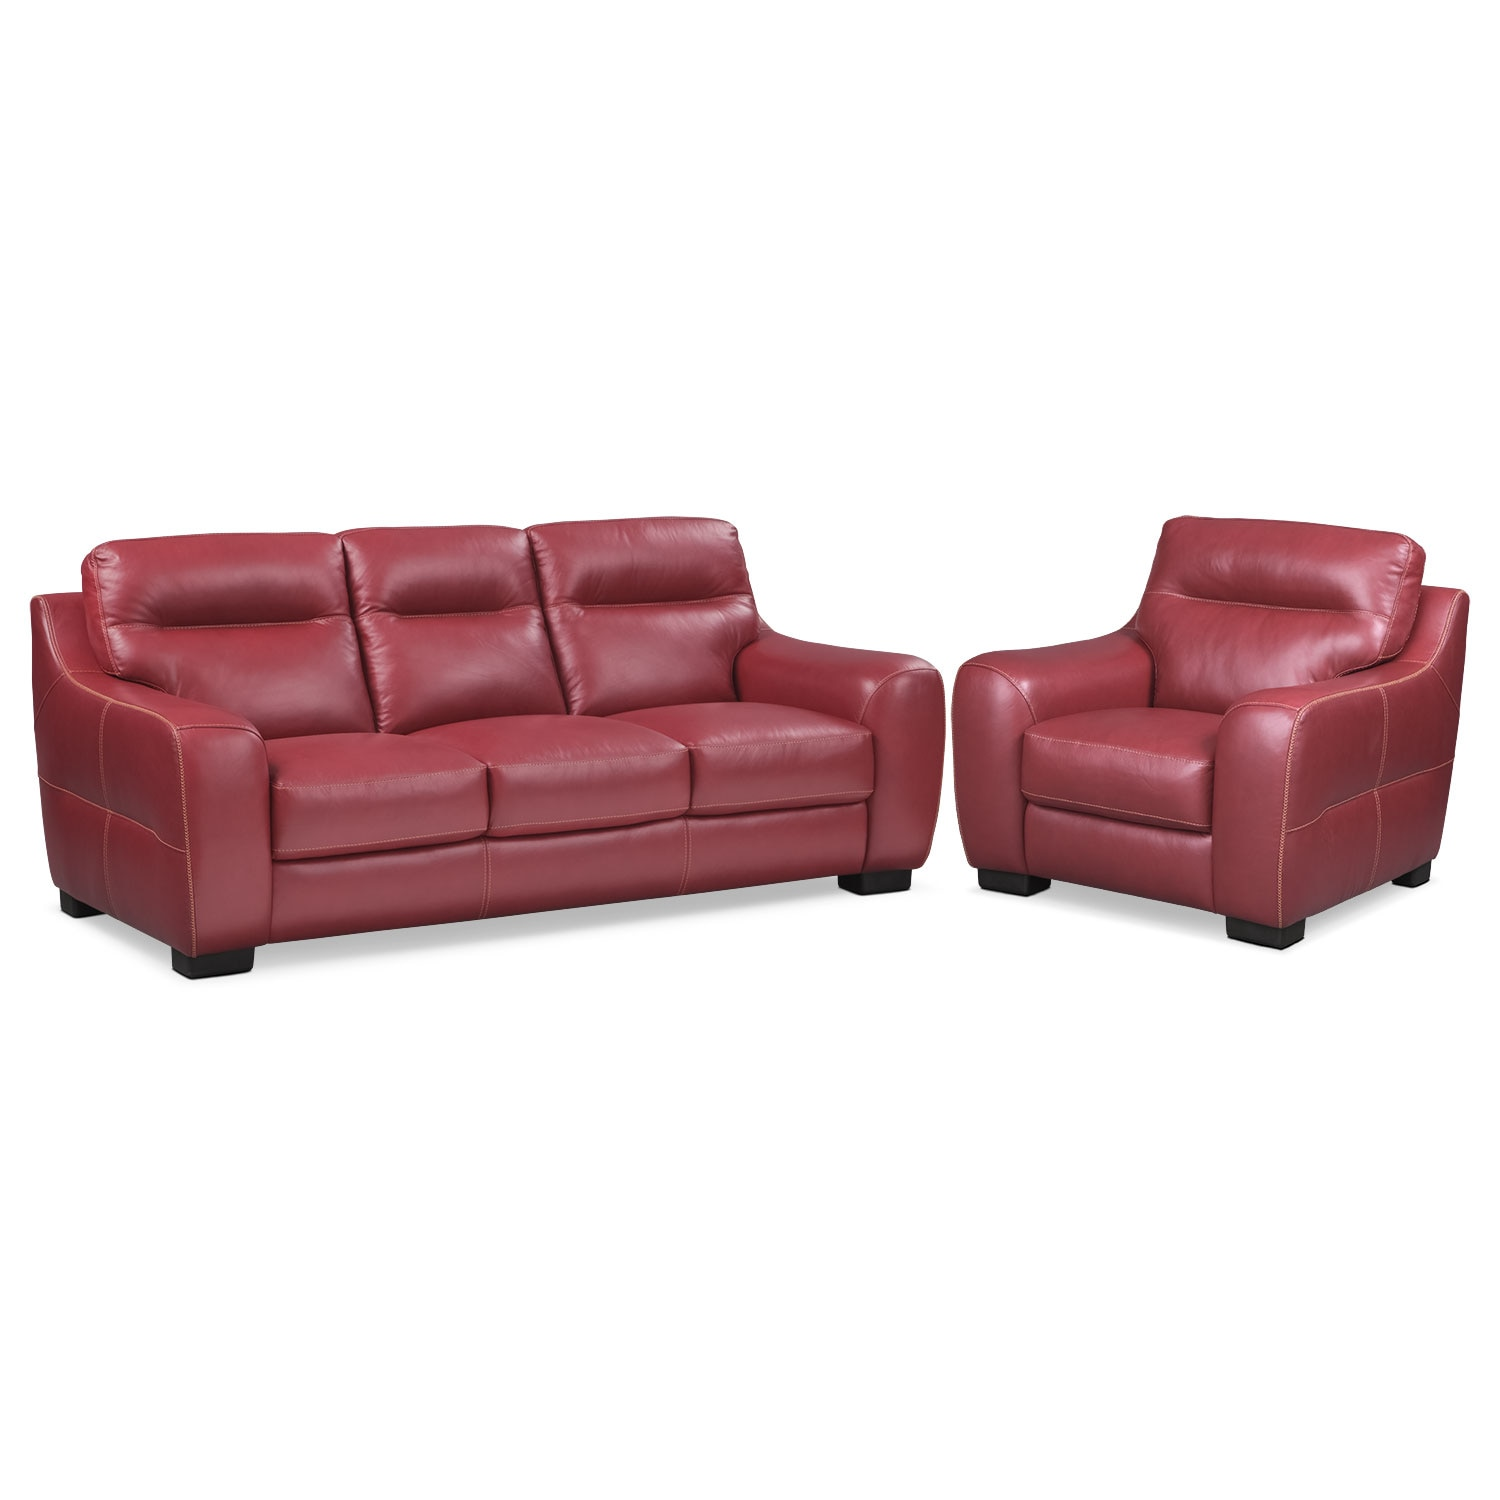 Living Room Furniture - Rocco Red 2 Pc. Living Room w/ Chair